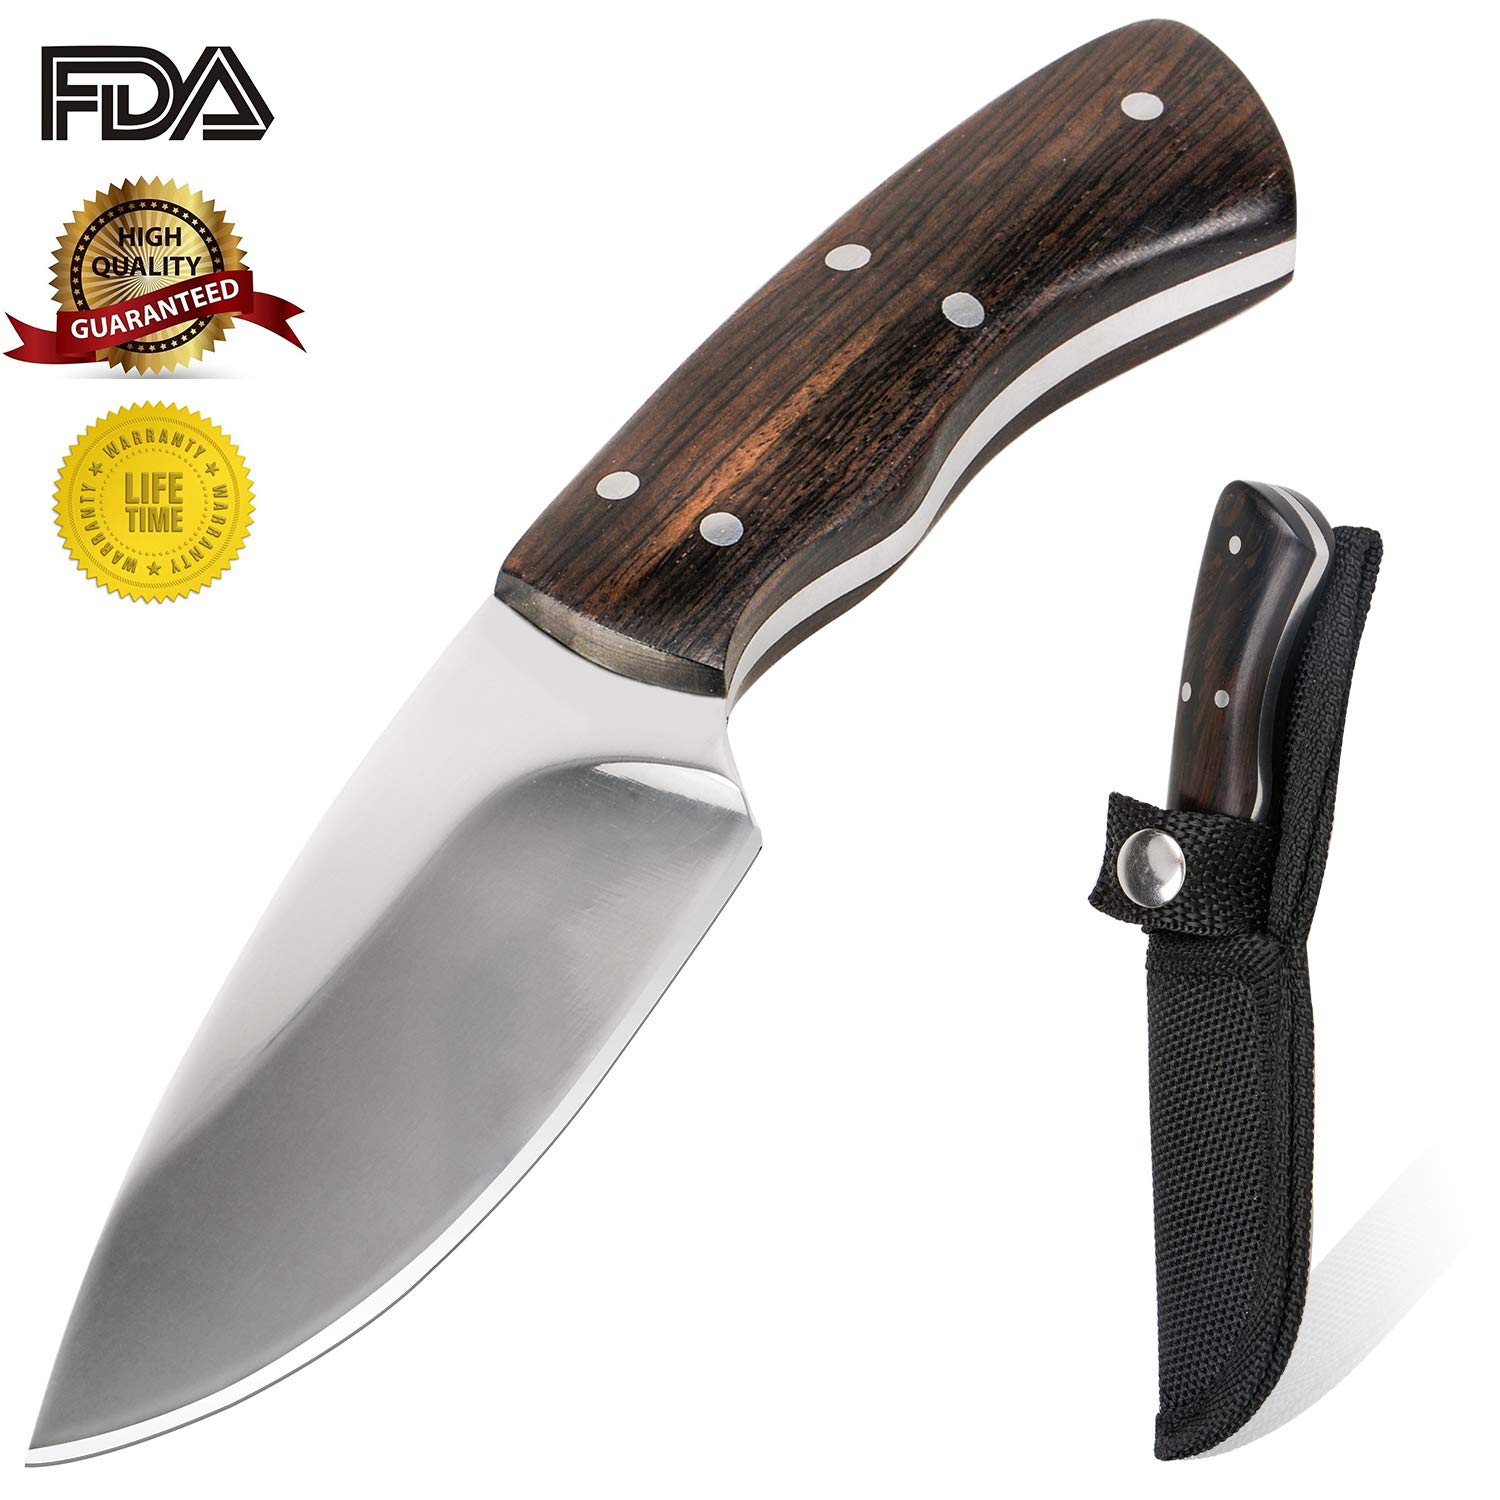 KTFNOMES Pocket Knives, 5.52 inches Mini Stainless Steel Outdoor Knife Sharp with Chef Knife/Knives & Tools/Best Choice for Survival, Camping, Craft, Gardenin by KTFNOMES (Image #2)